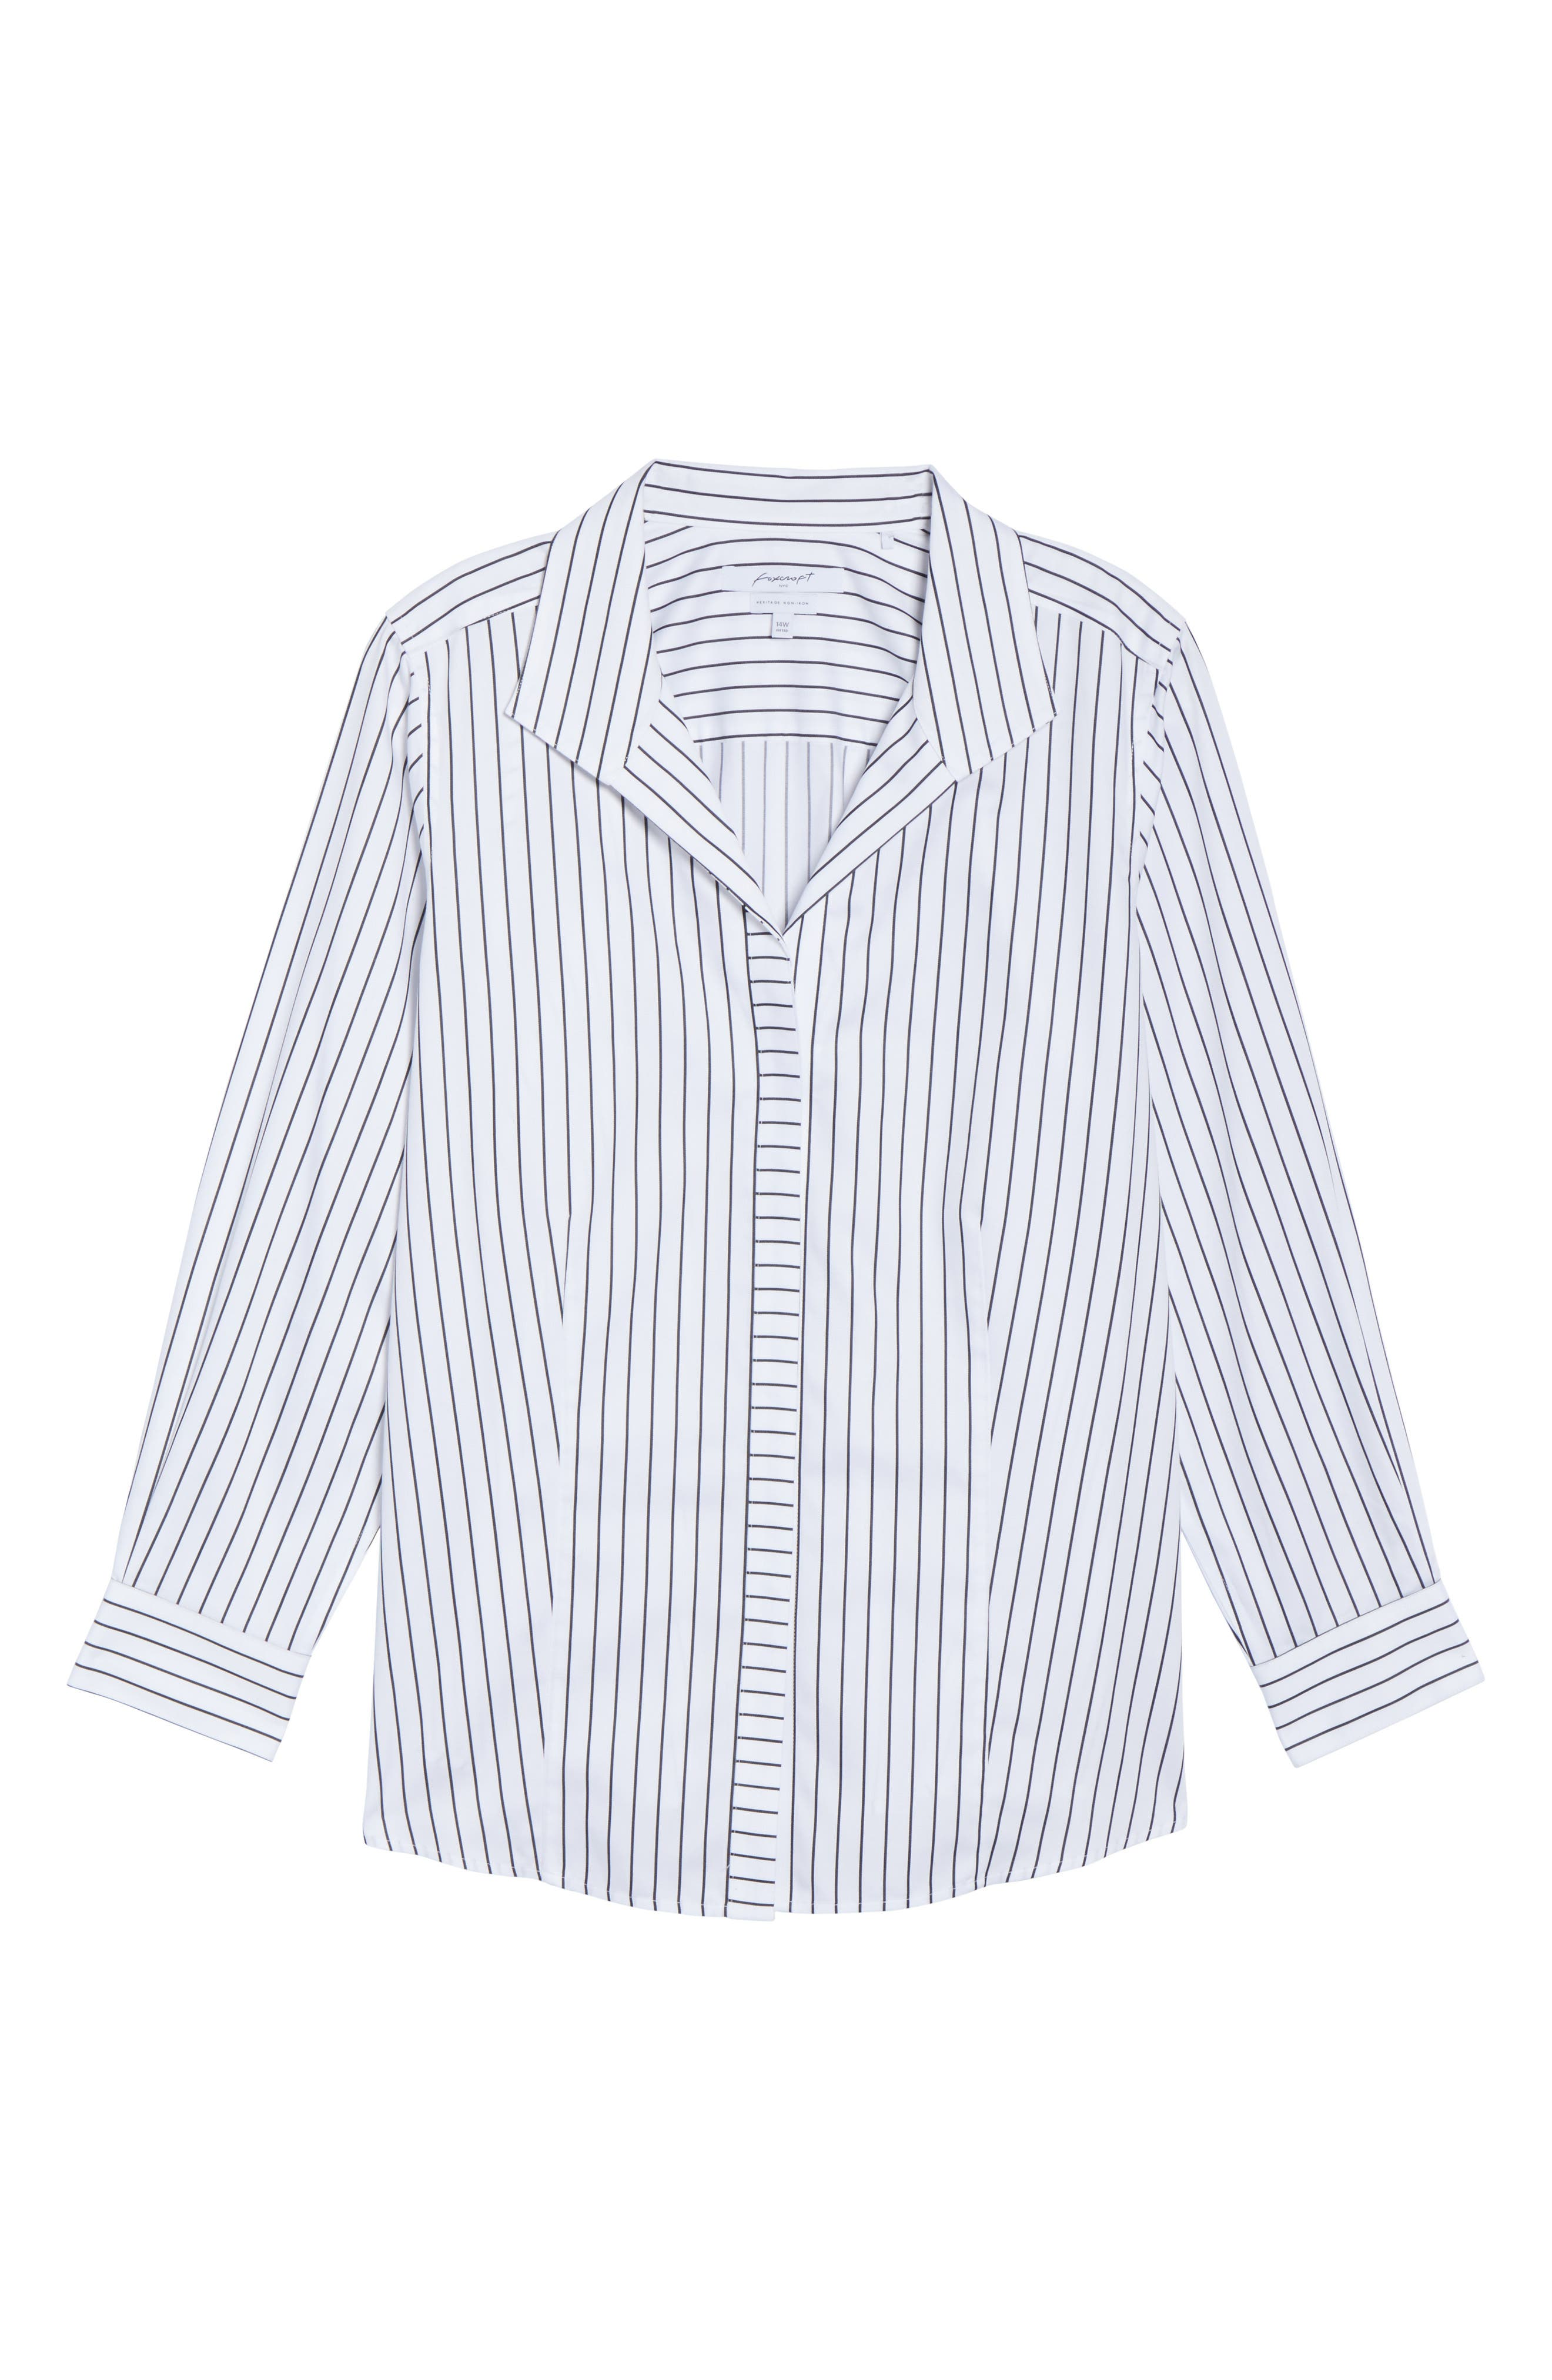 Annie Holiday Stripe Shirt,                             Alternate thumbnail 6, color,                             100